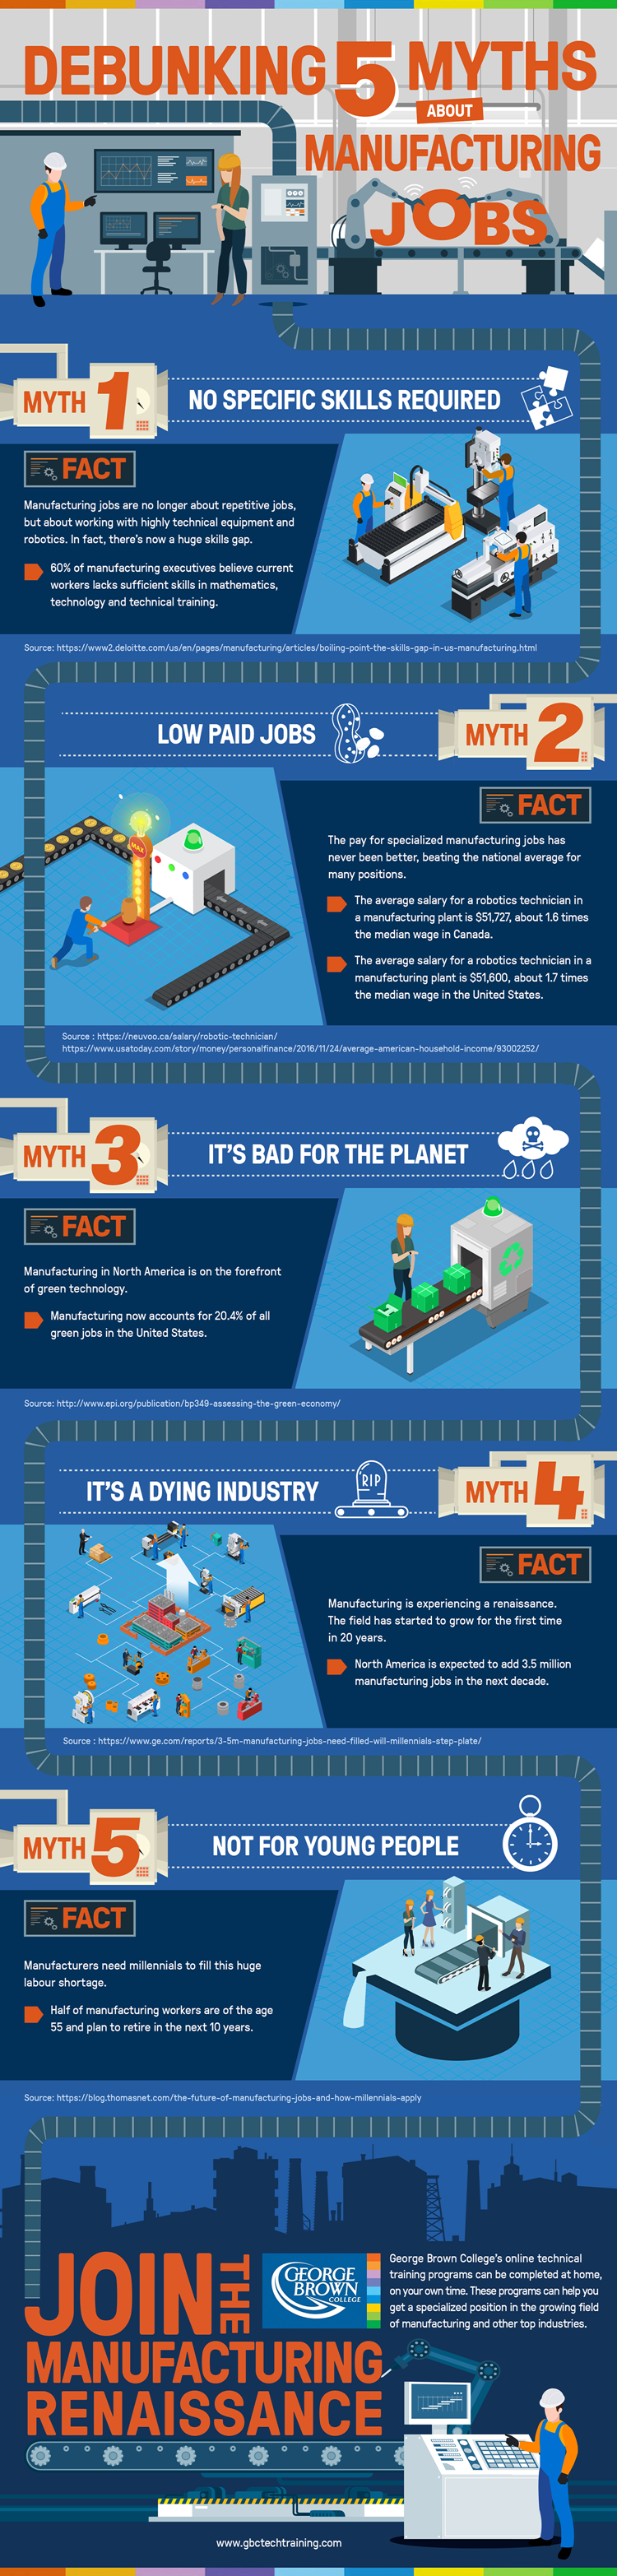 Debunking the myths of manufacturing